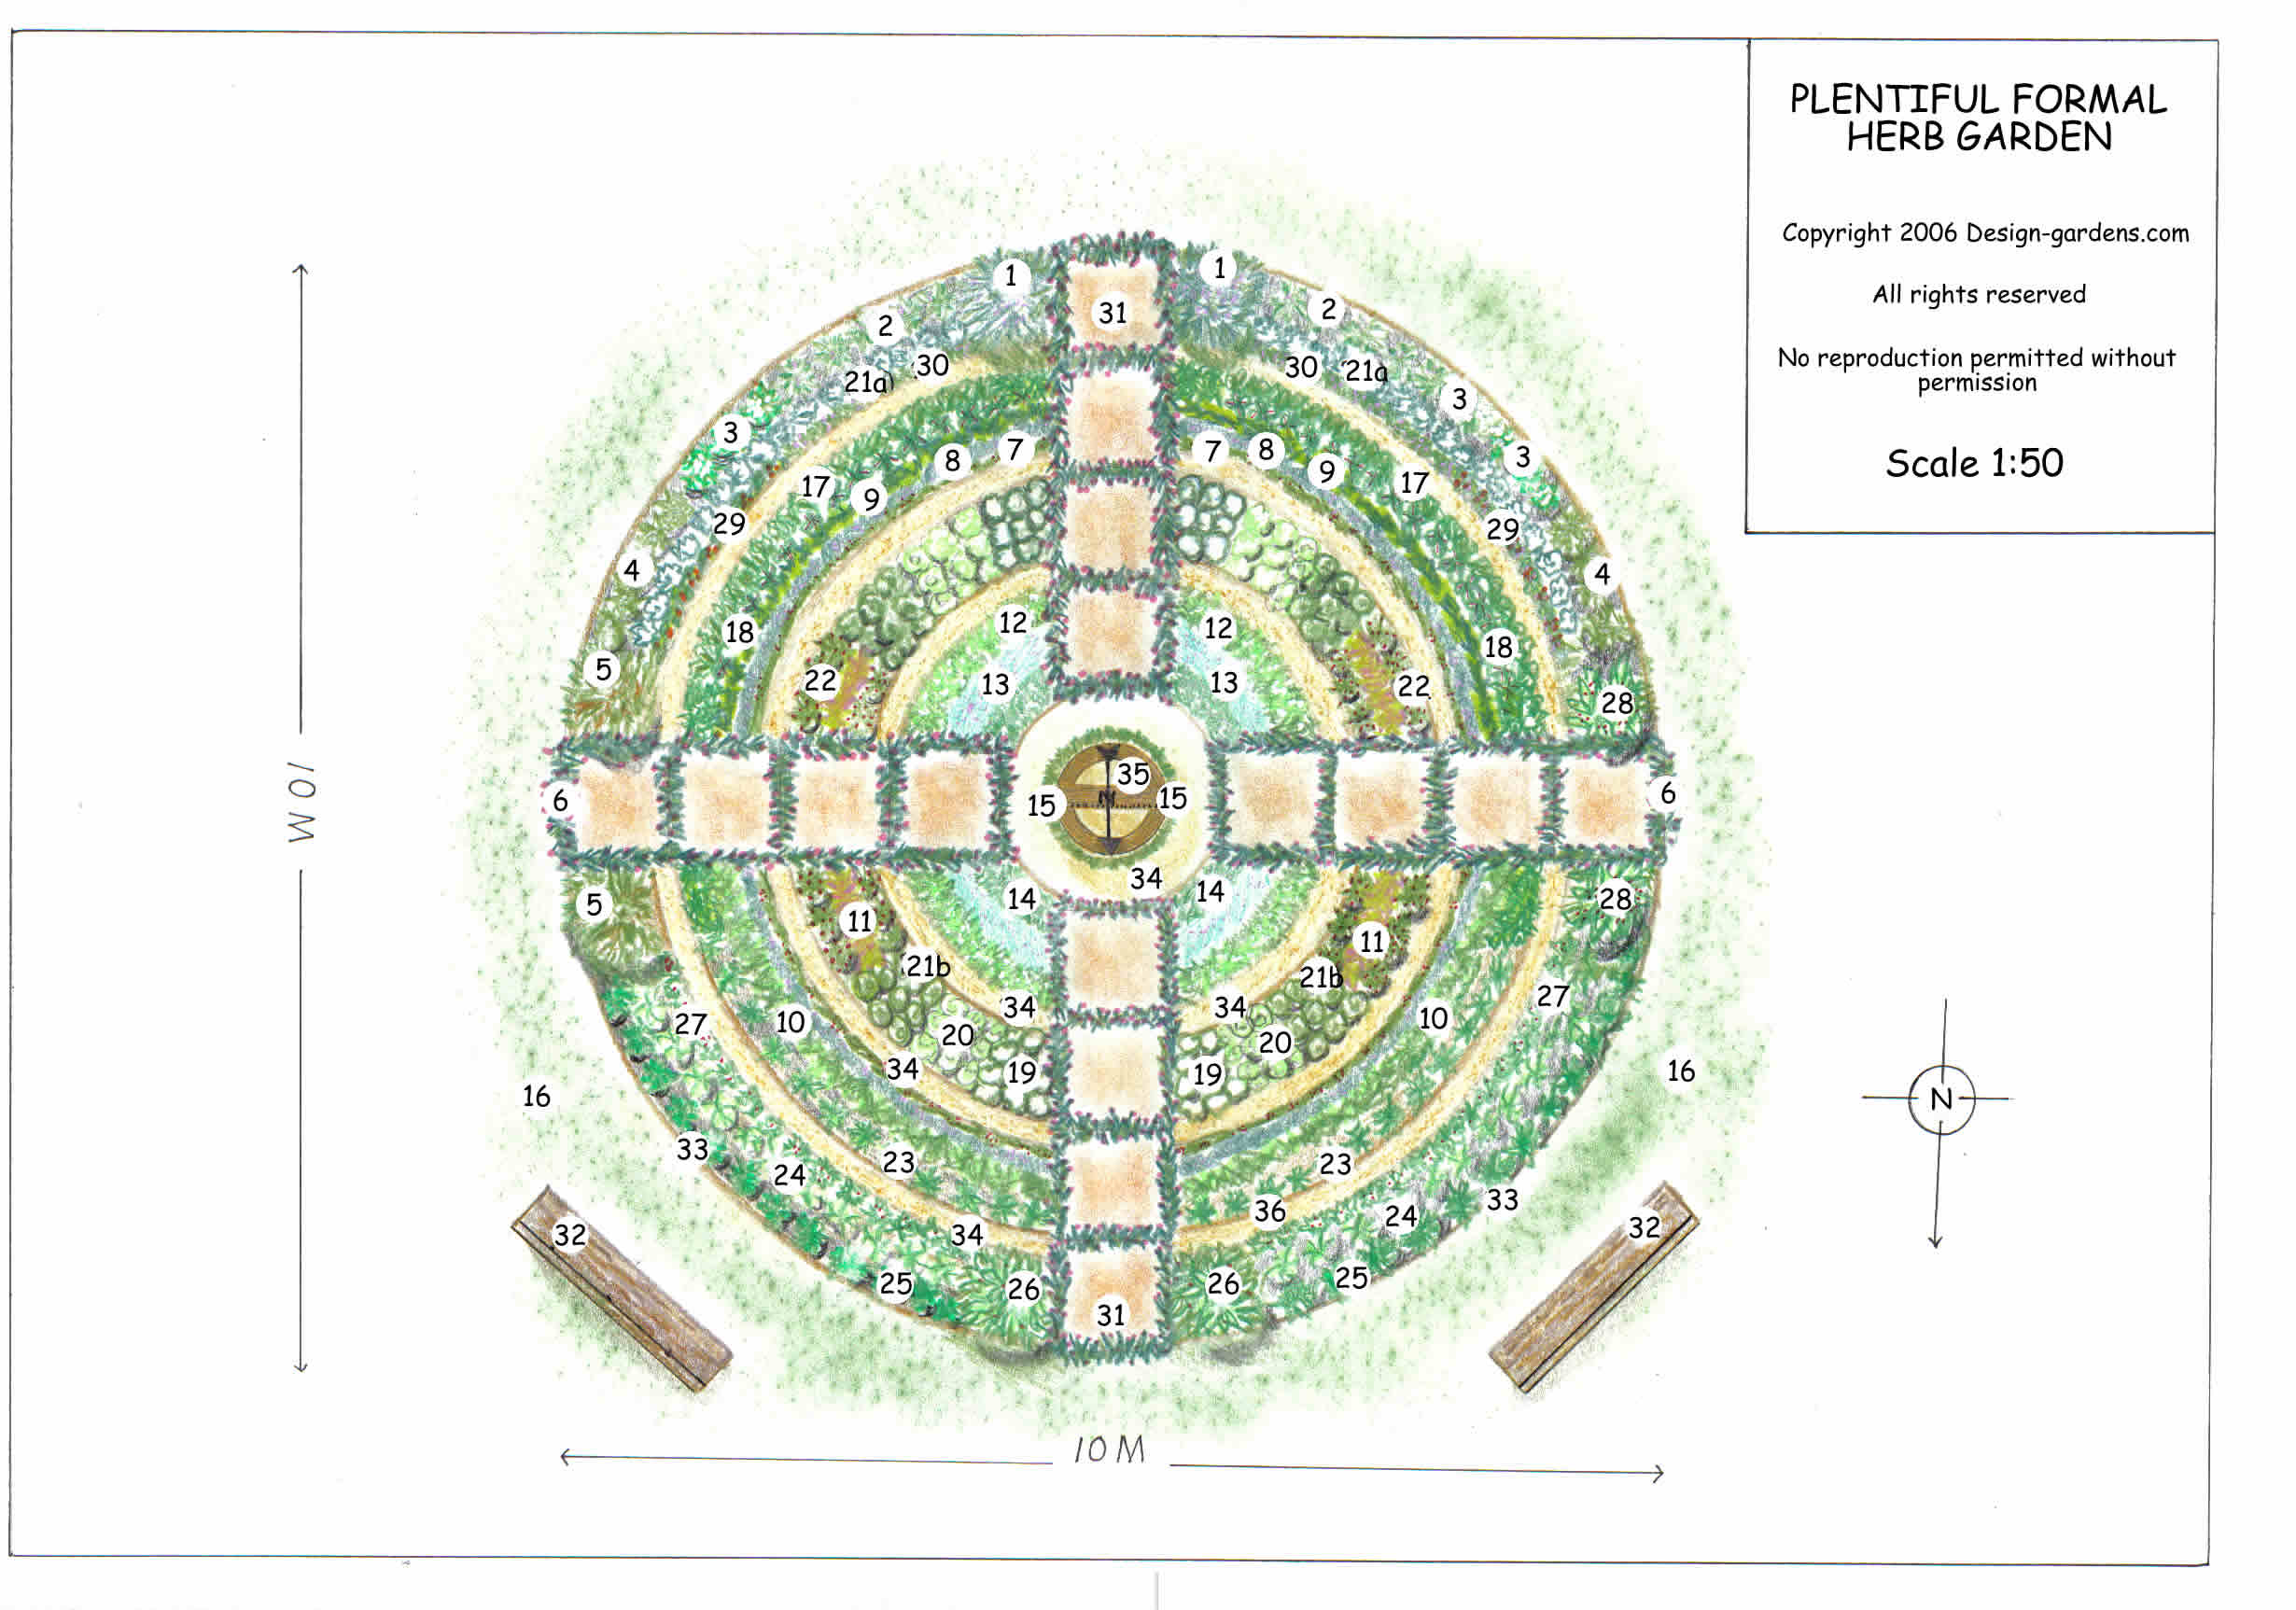 Description herb garden design